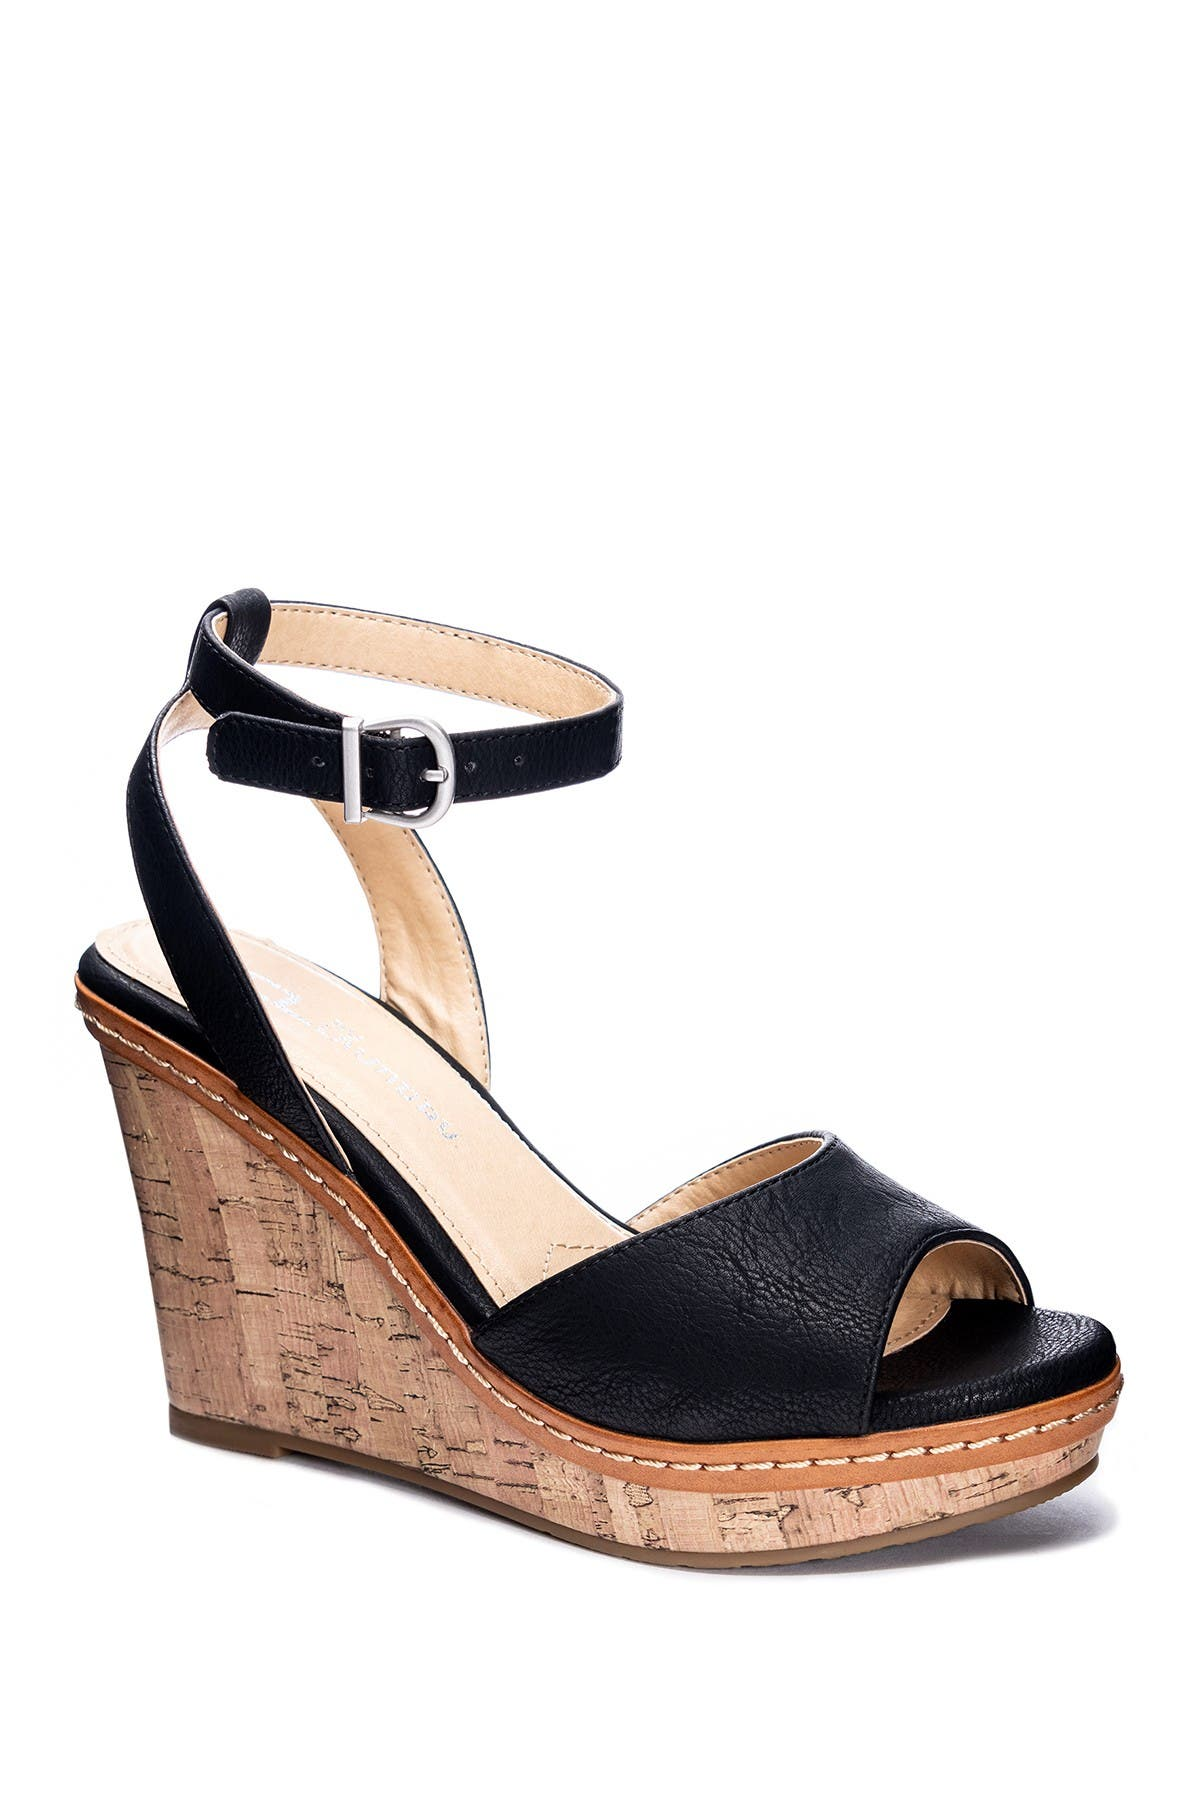 Image of CL by Laundry Booming Wedge Sandal